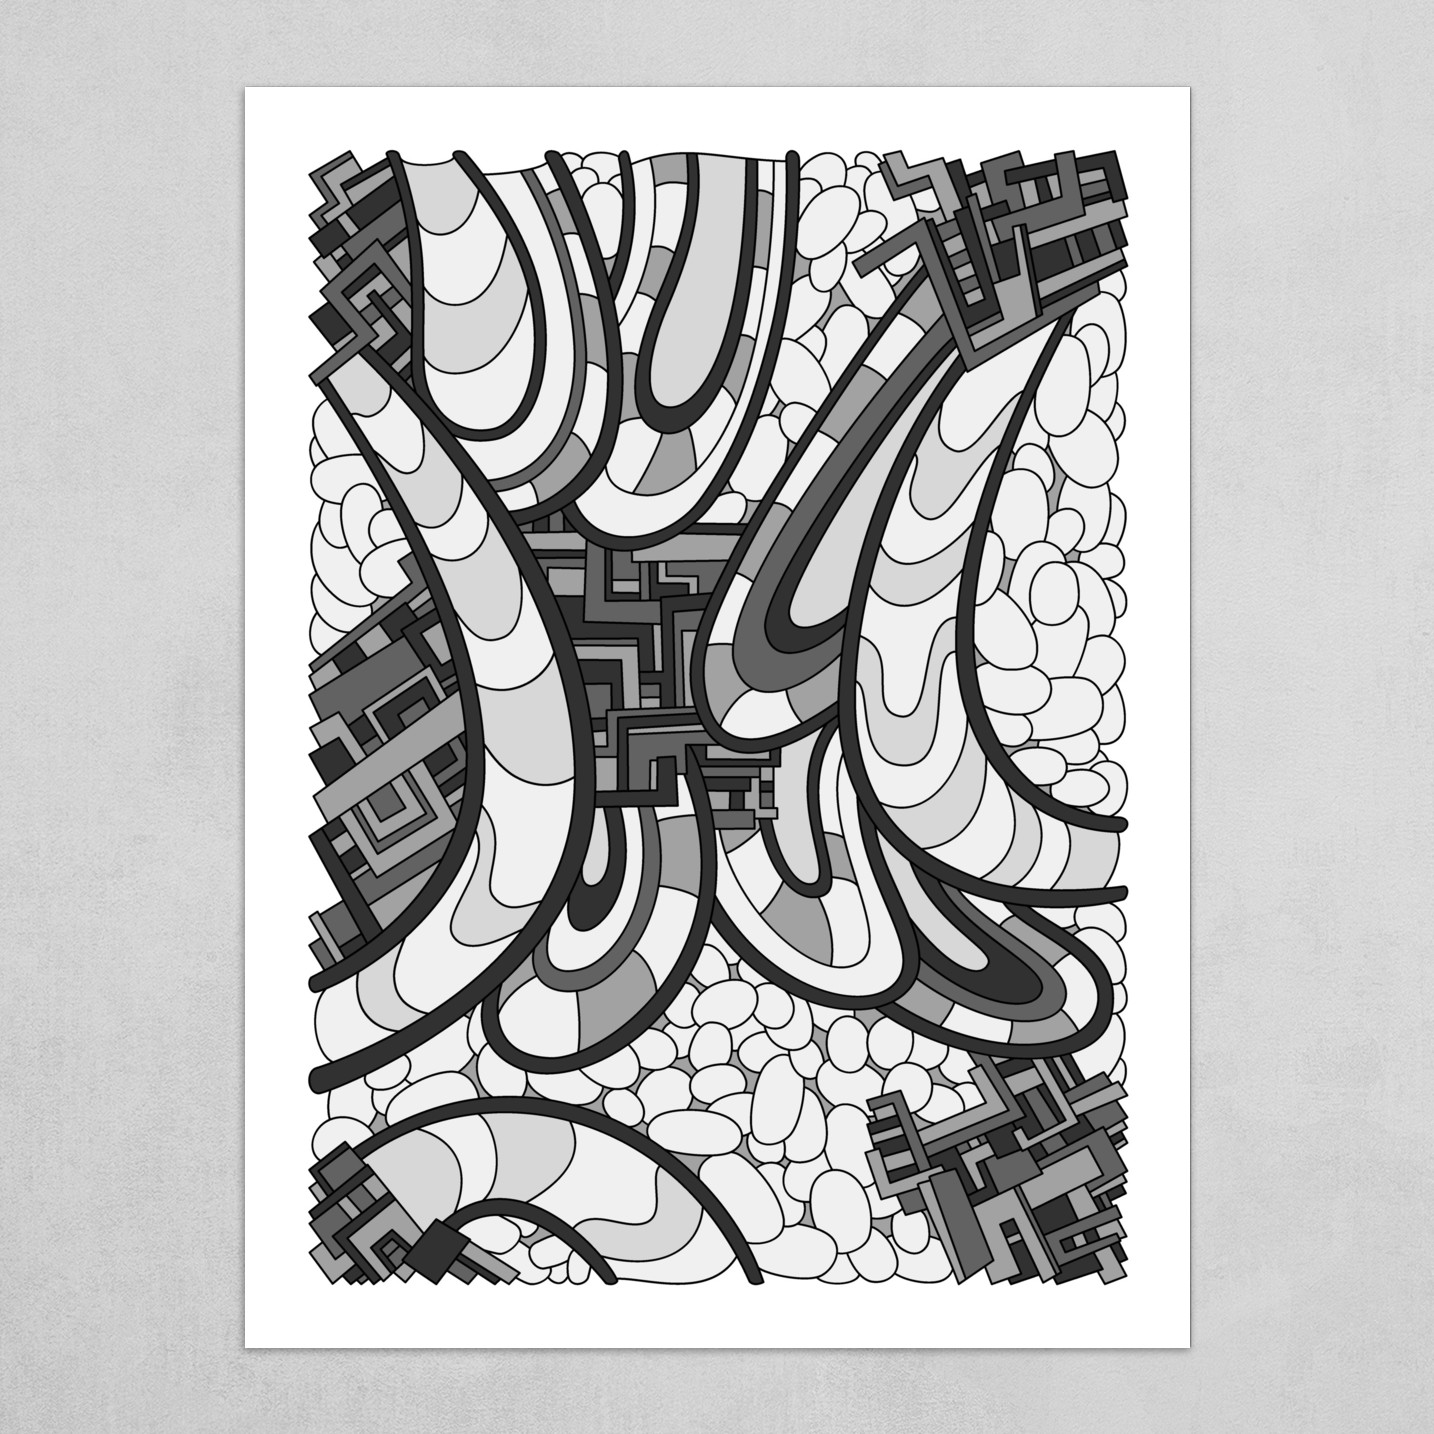 Wandering Abstract Line Art 09: Grayscale